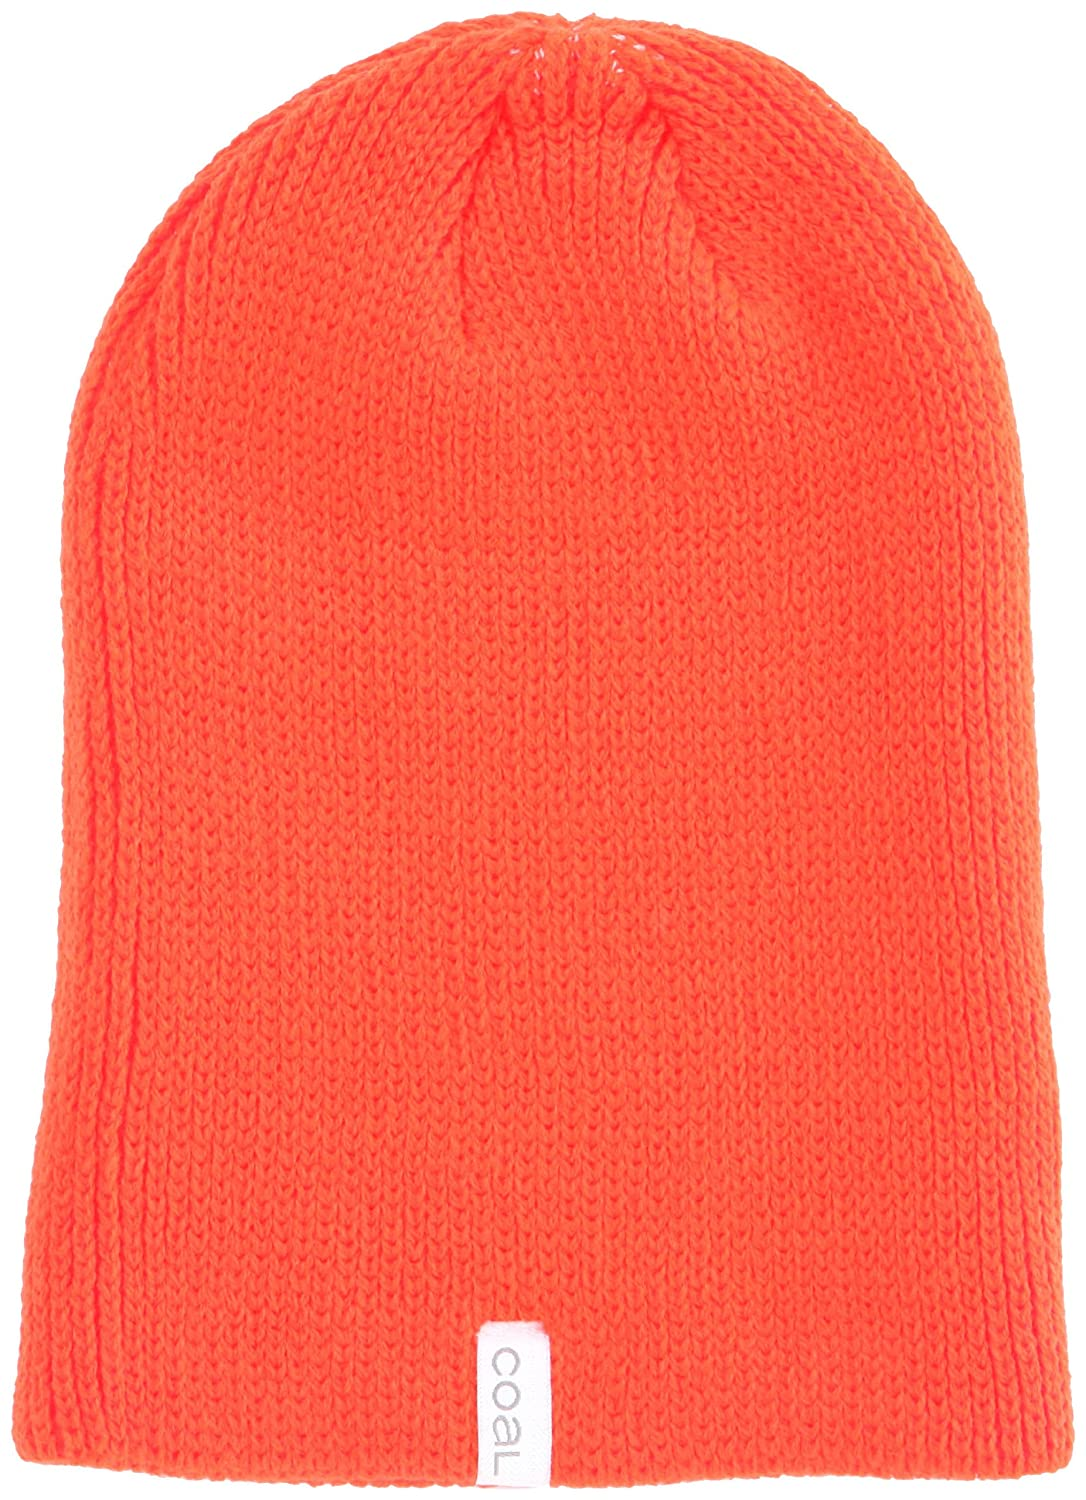 237129f17a3 Amazon.com  Coal Men s The Frena Solid Beanie